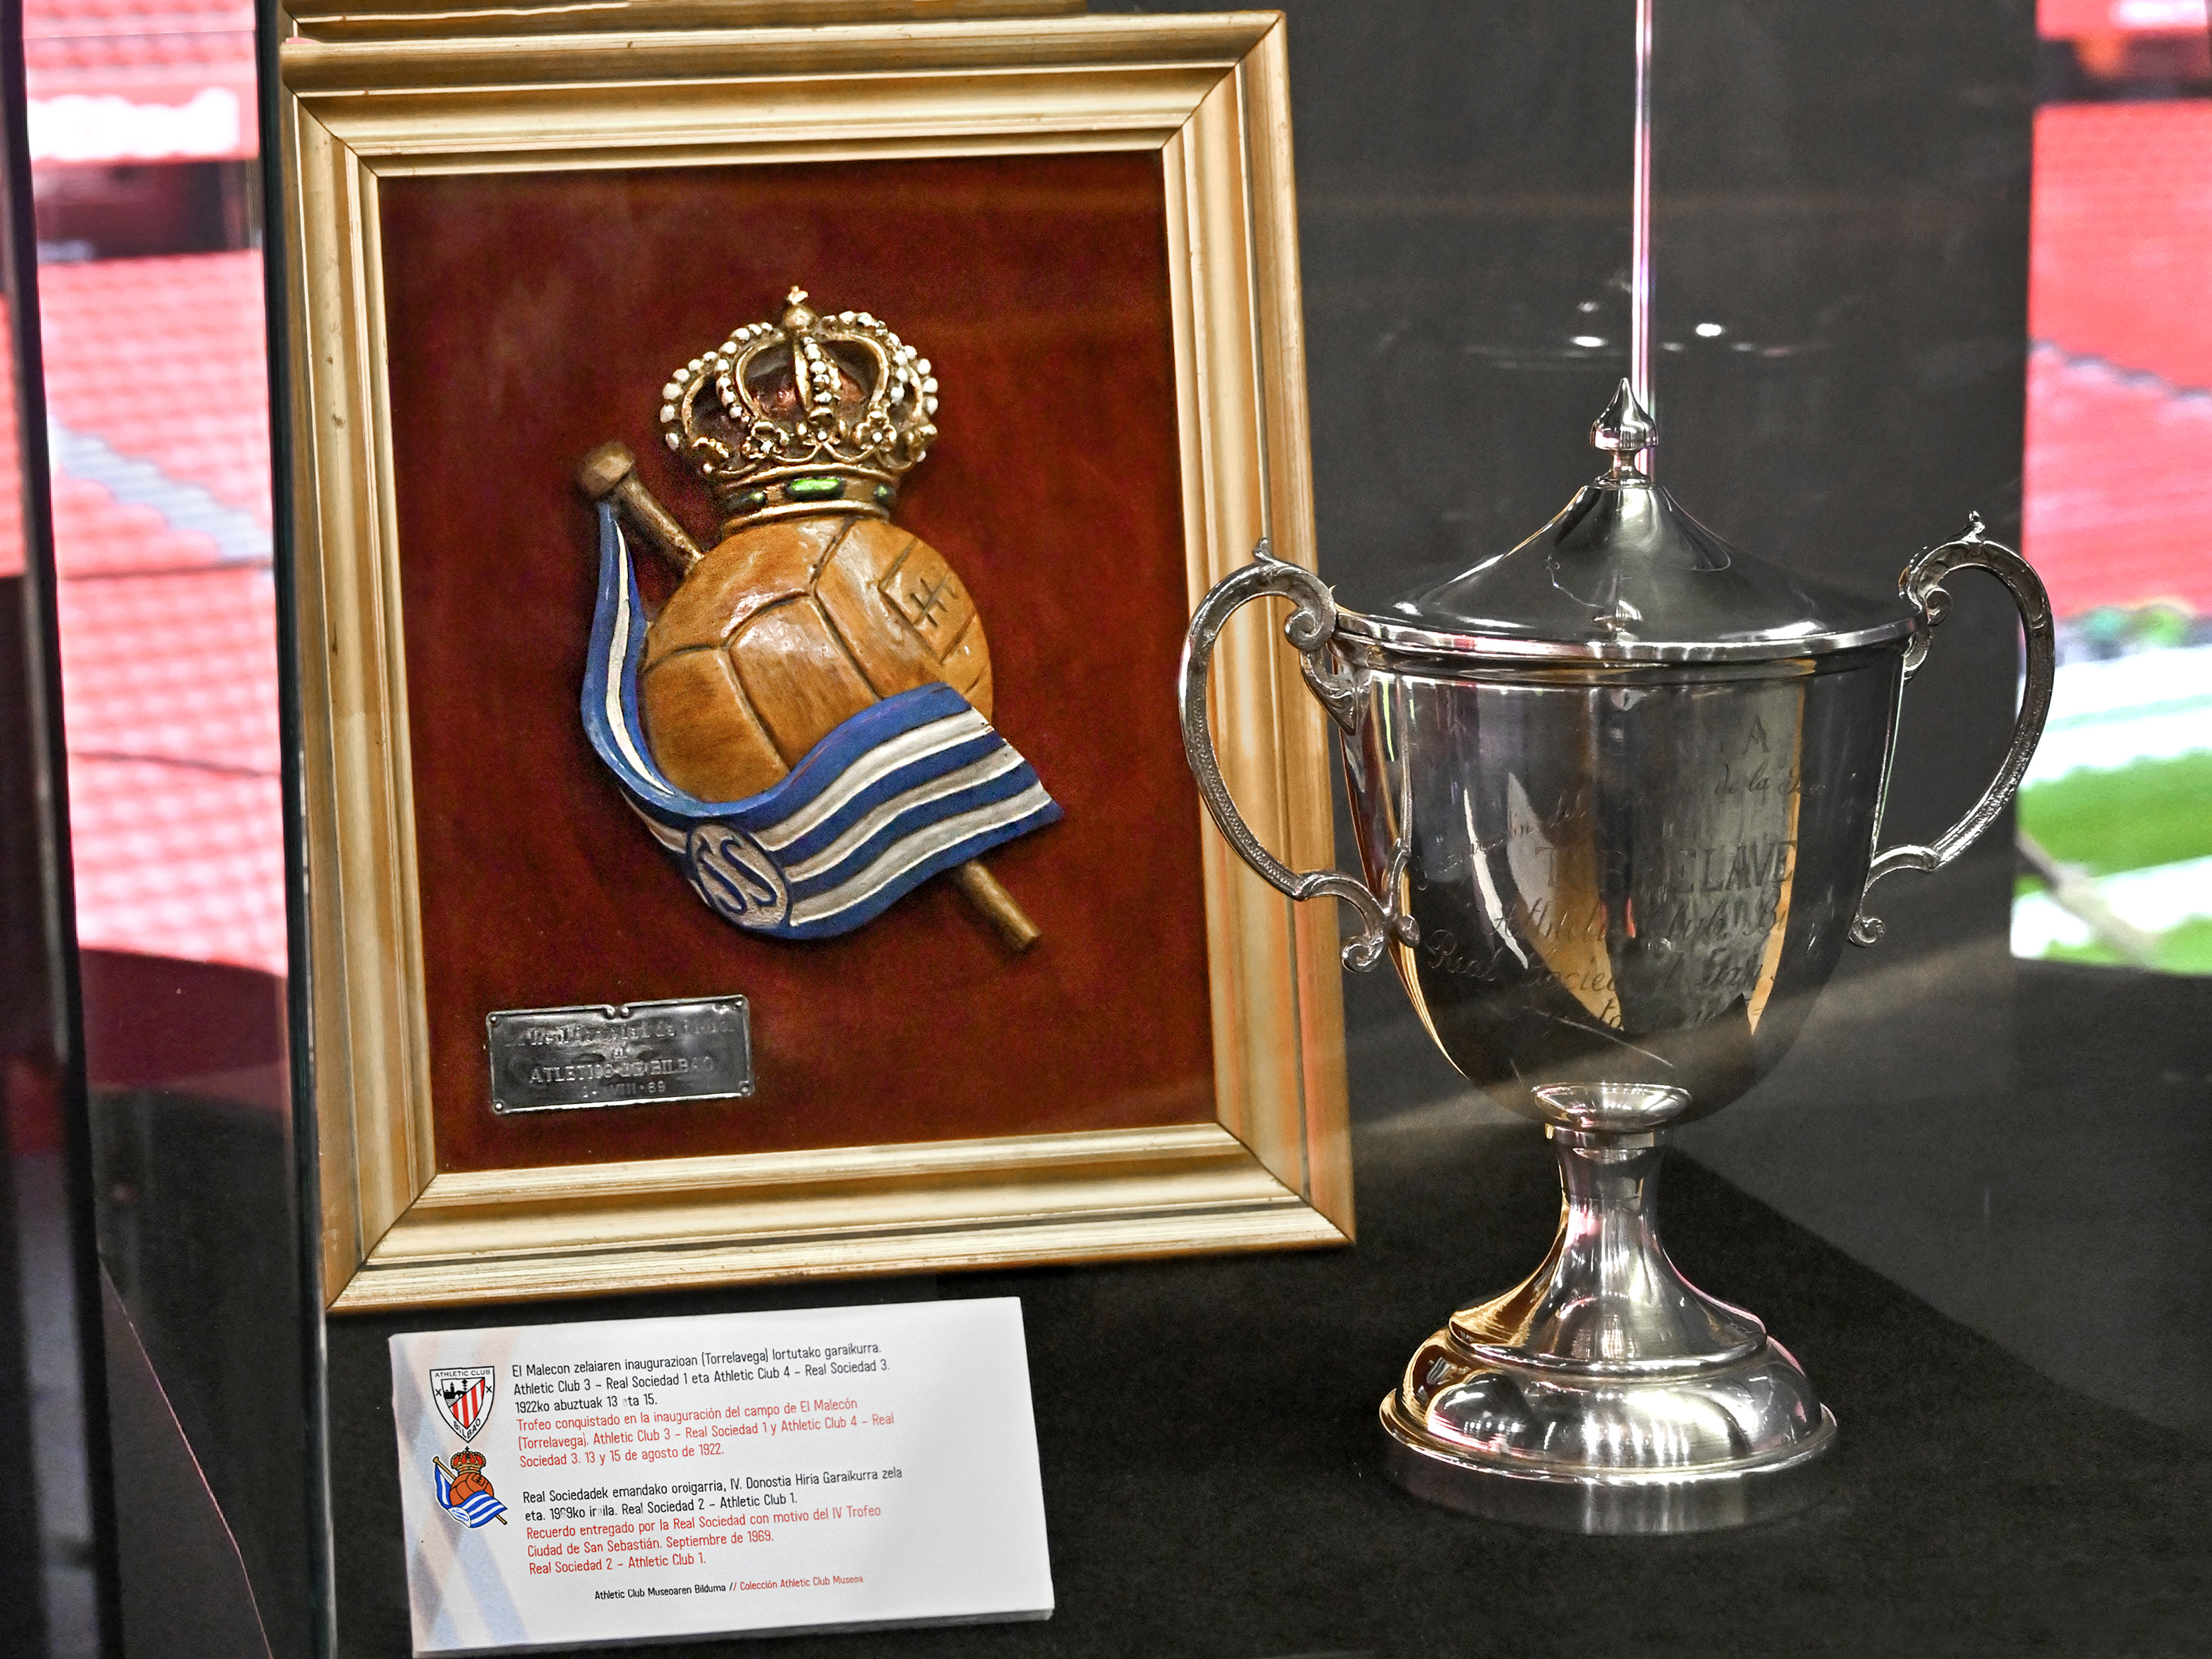 From the Museum to the Main Box: Real Sociedad